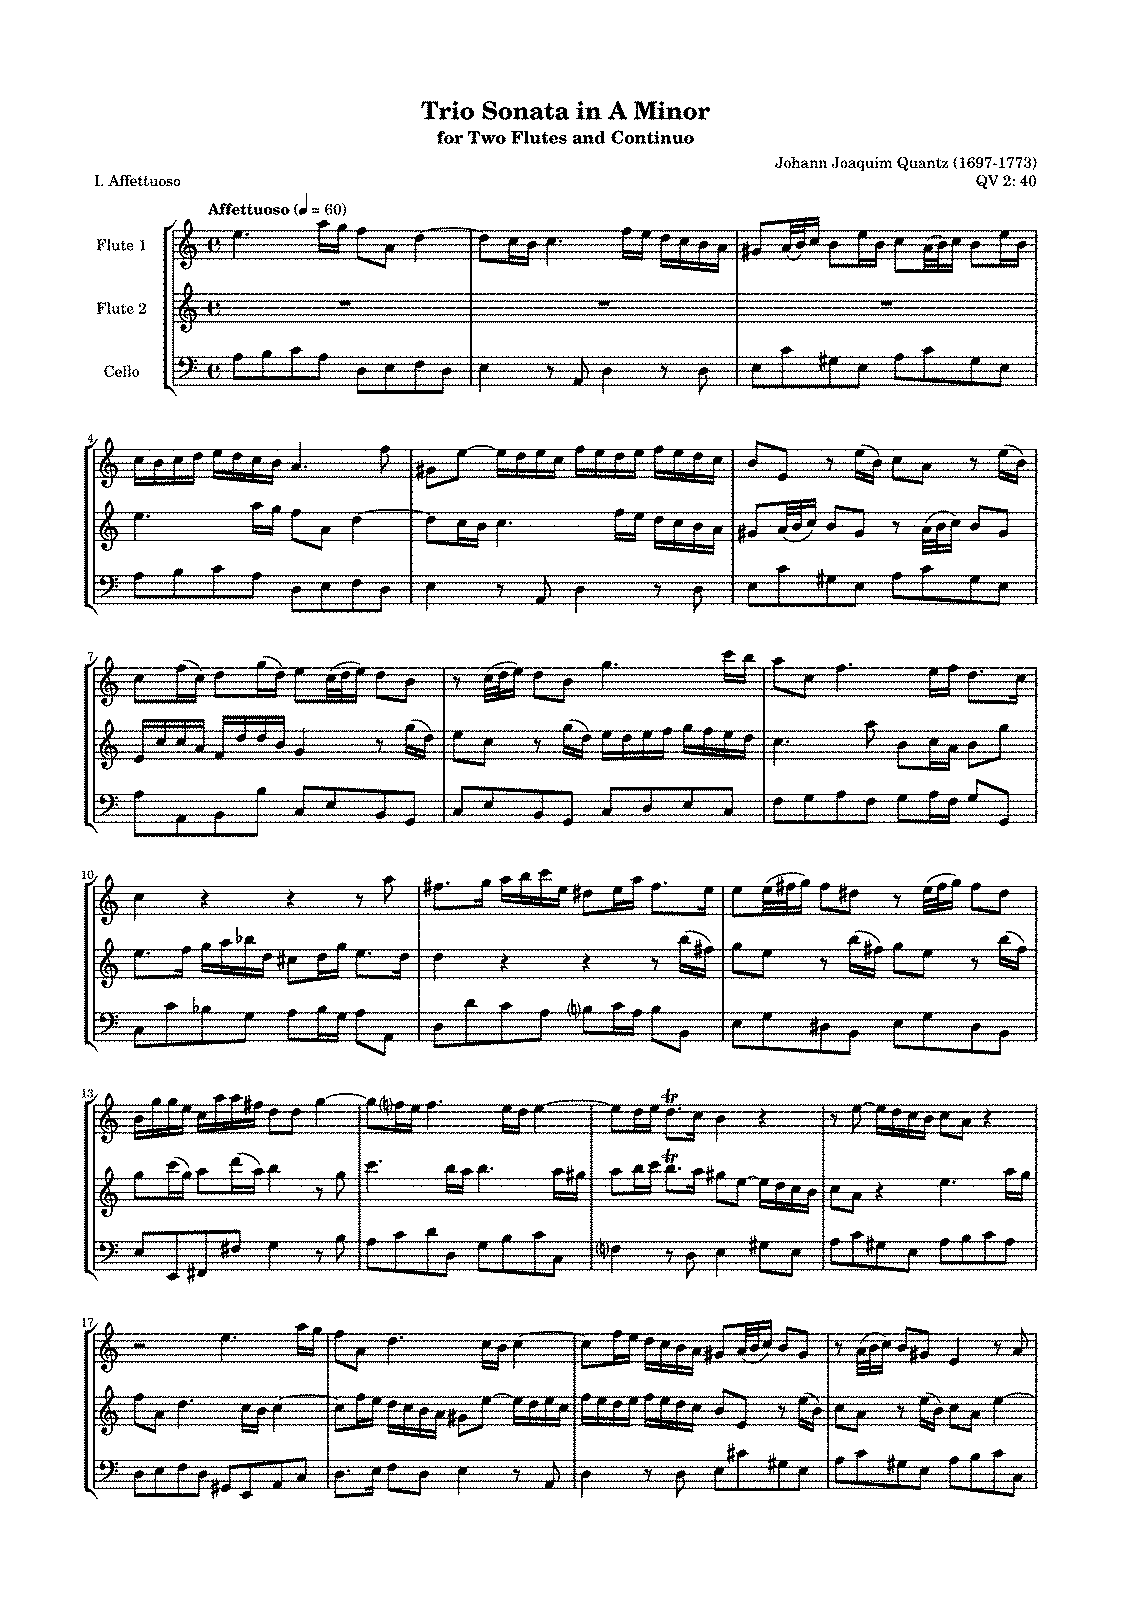 PMLP113386-Quantz Trio Sonata in A Minor - Score.pdf